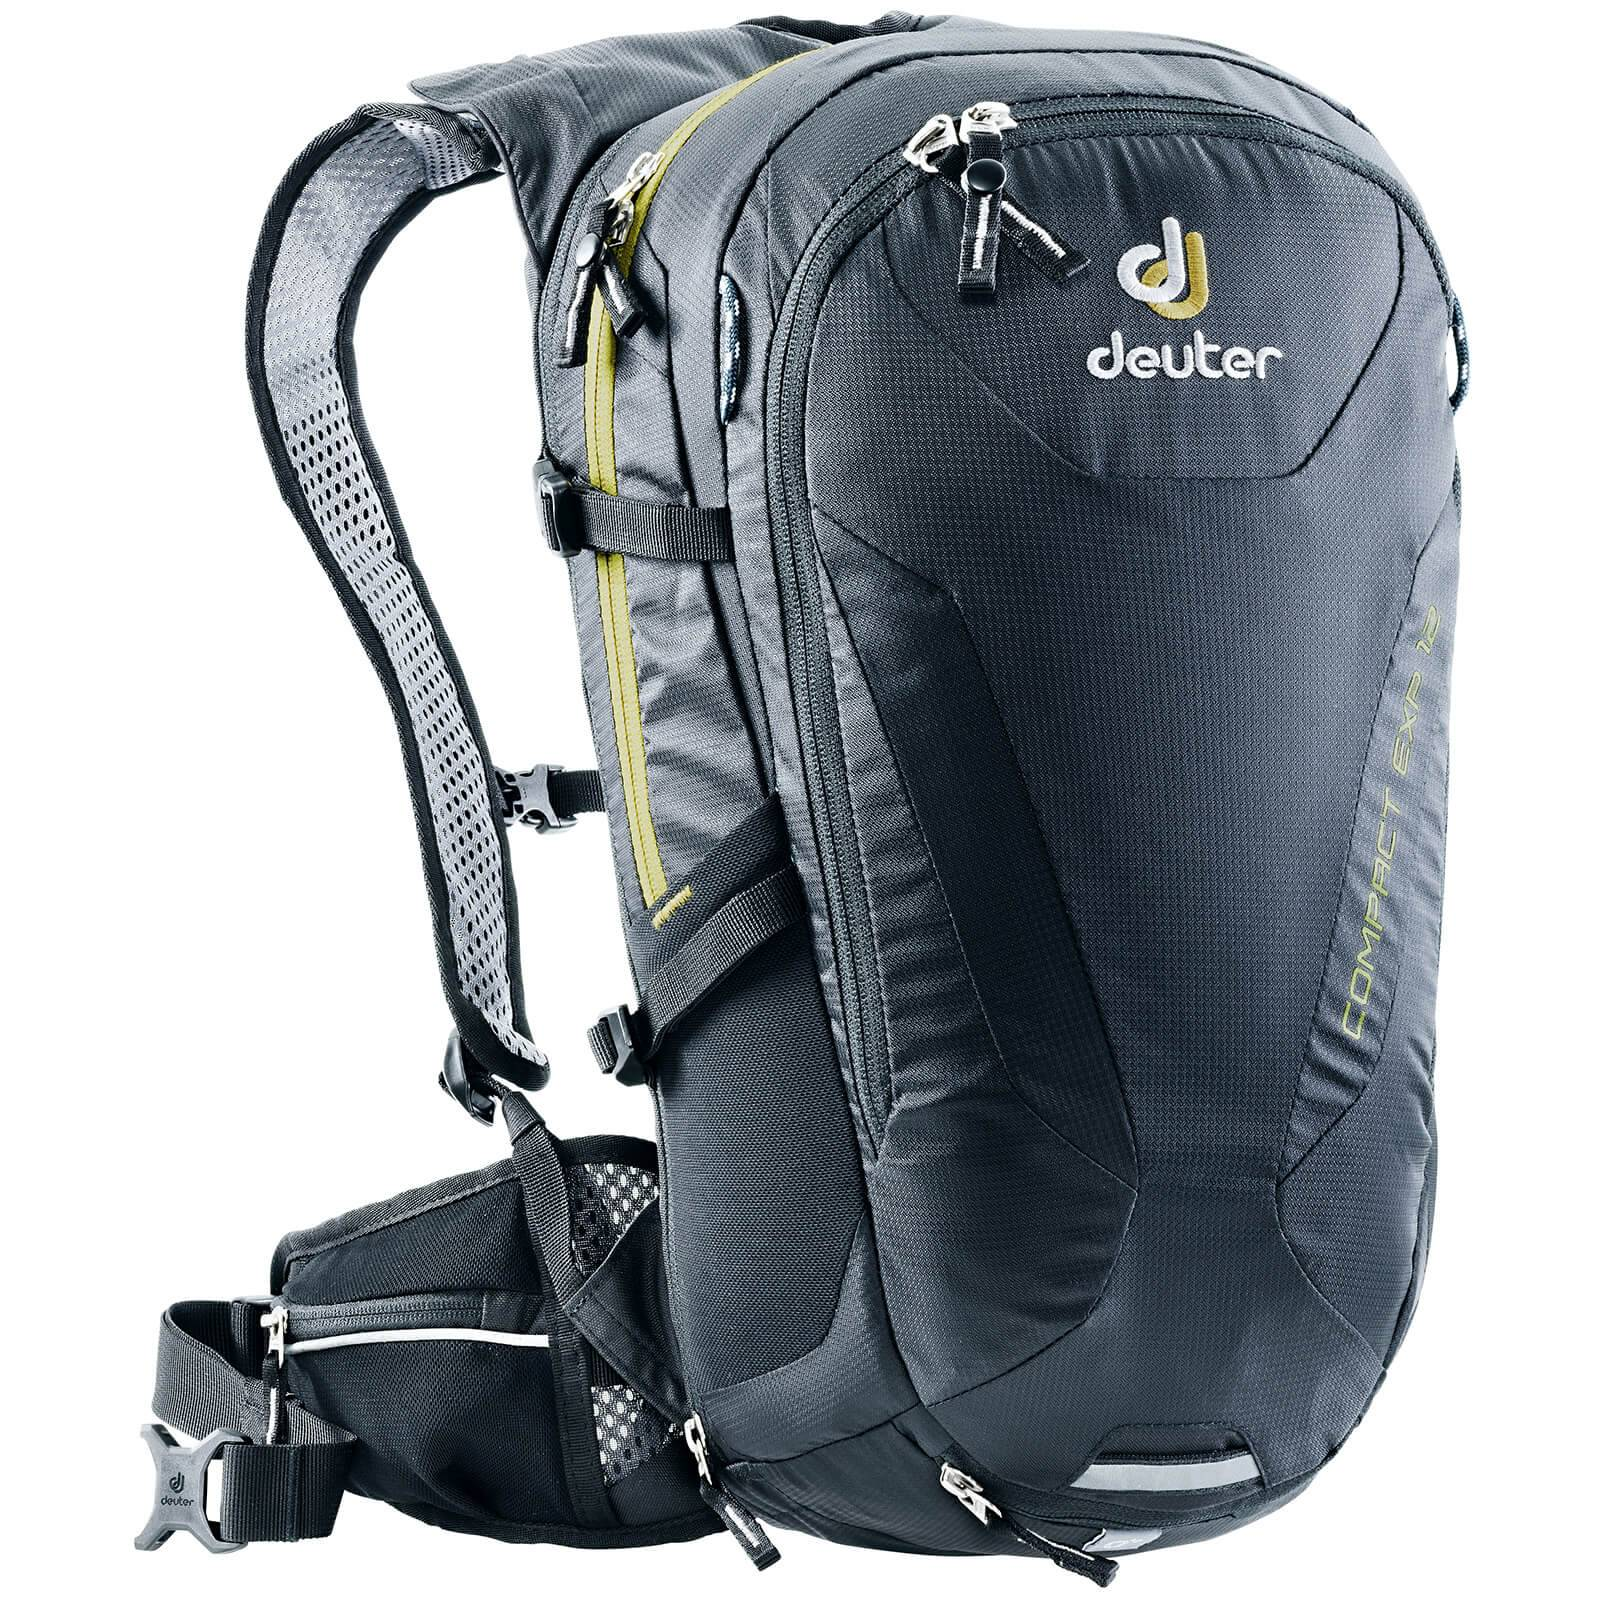 Deuter Compact Exp 10 SL 12.5L Backpack - Black